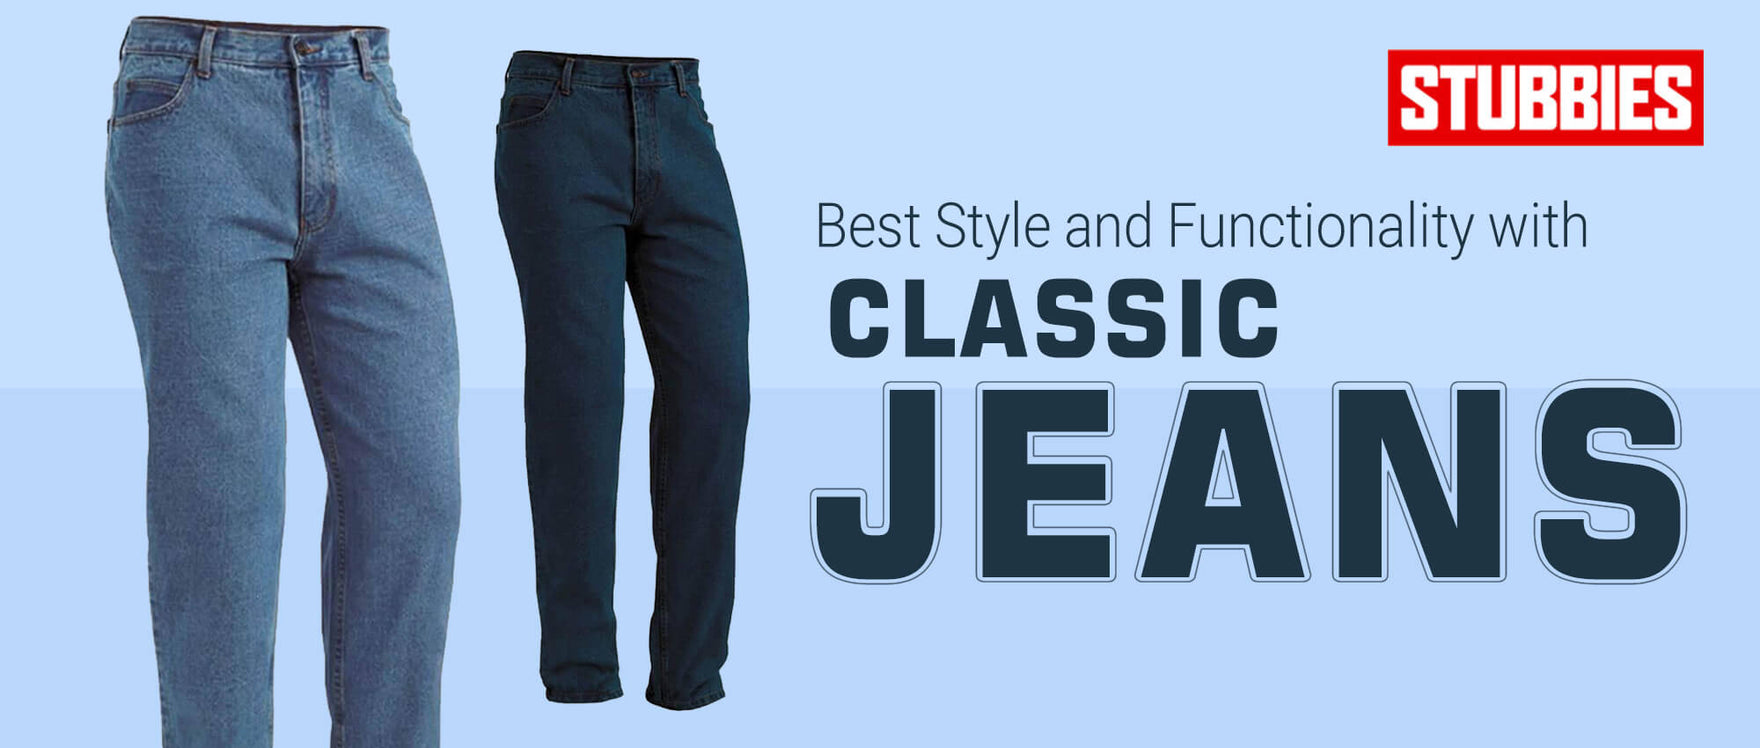 Best Style and Functionality with Classic Jeans